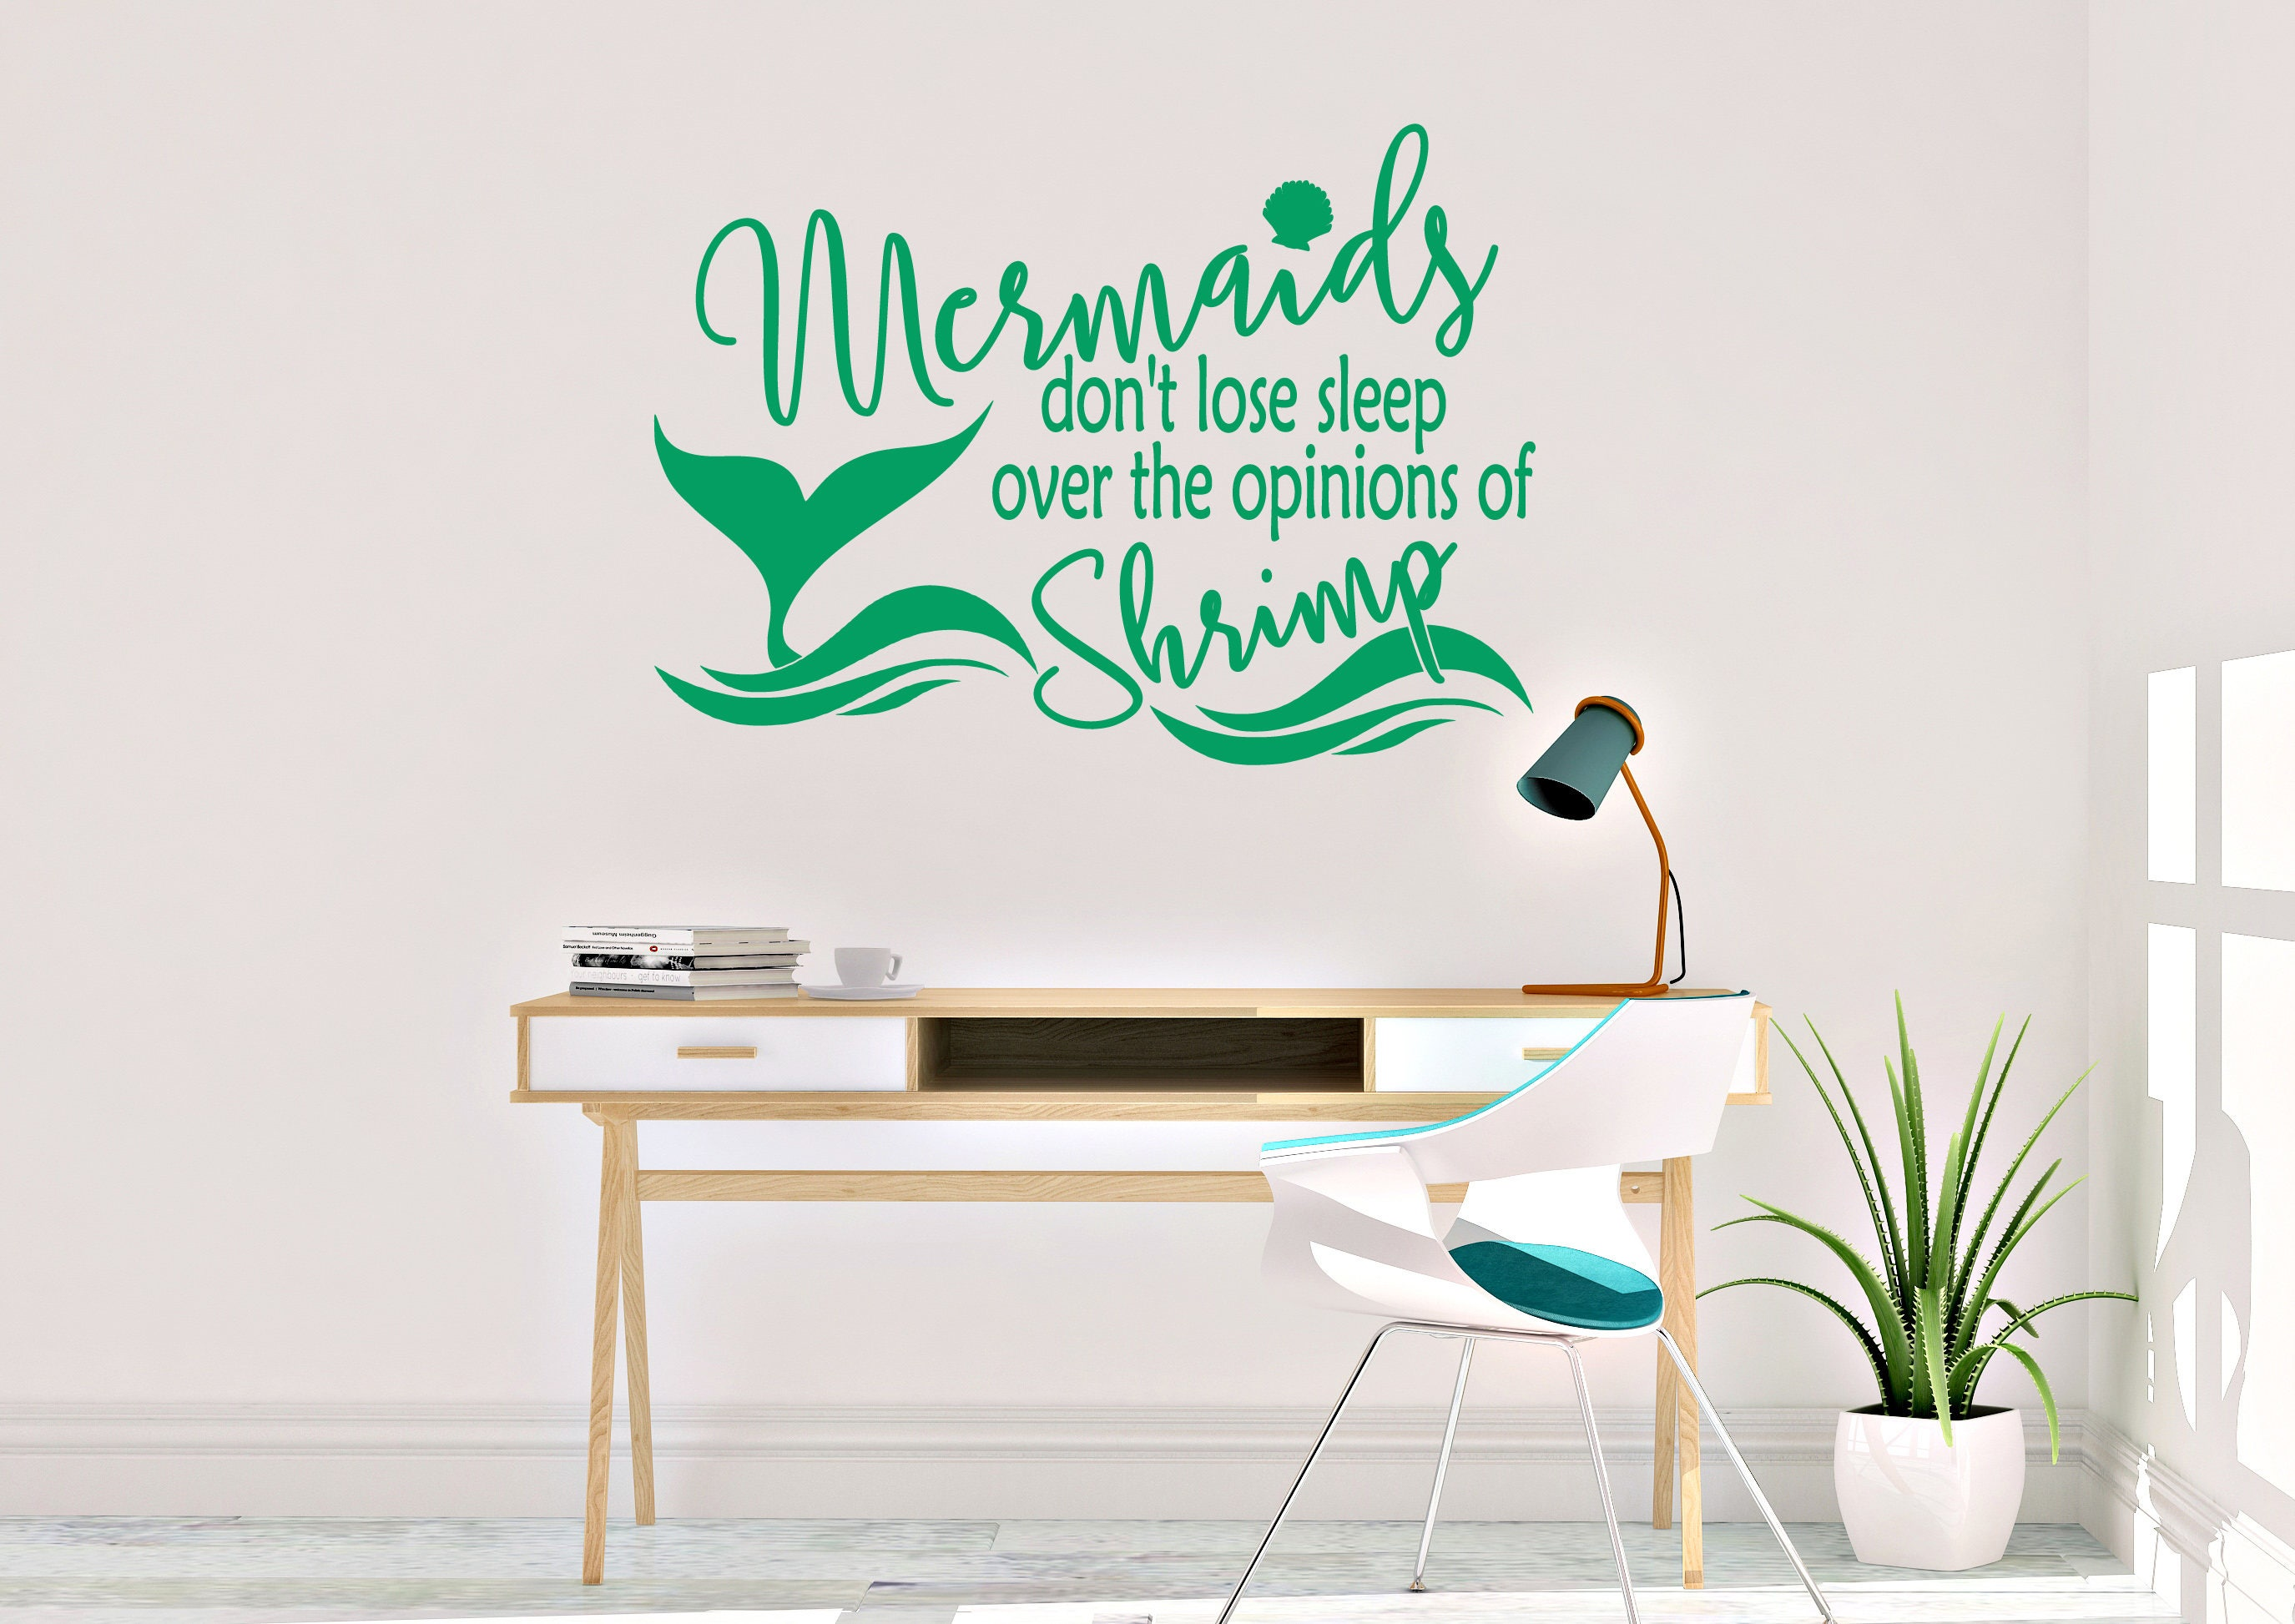 Mermaids Donu0027t Lose Sleep Wall Decal   Mermaid Wall Decal   Vinyl Wall Decal    Mermaid   Mermaid Decals   Mermaid Decor   Mermaid Wall Art